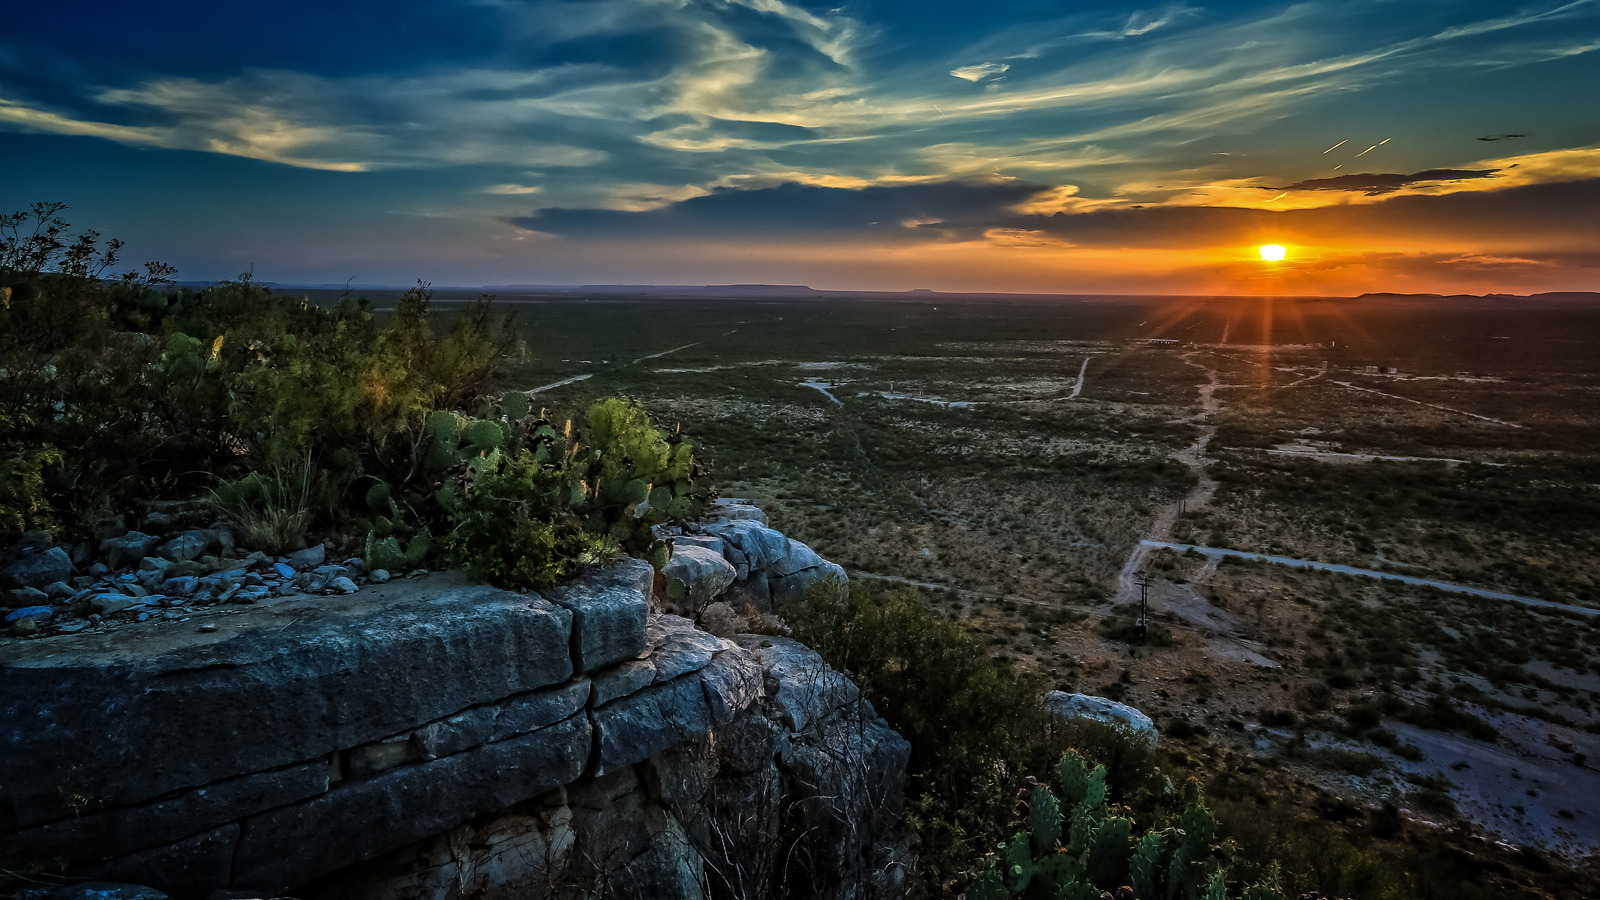 Sunrise in the mountains of West Texas with rocks in the foreground and flat open space in distance with the sun rising at the horizon